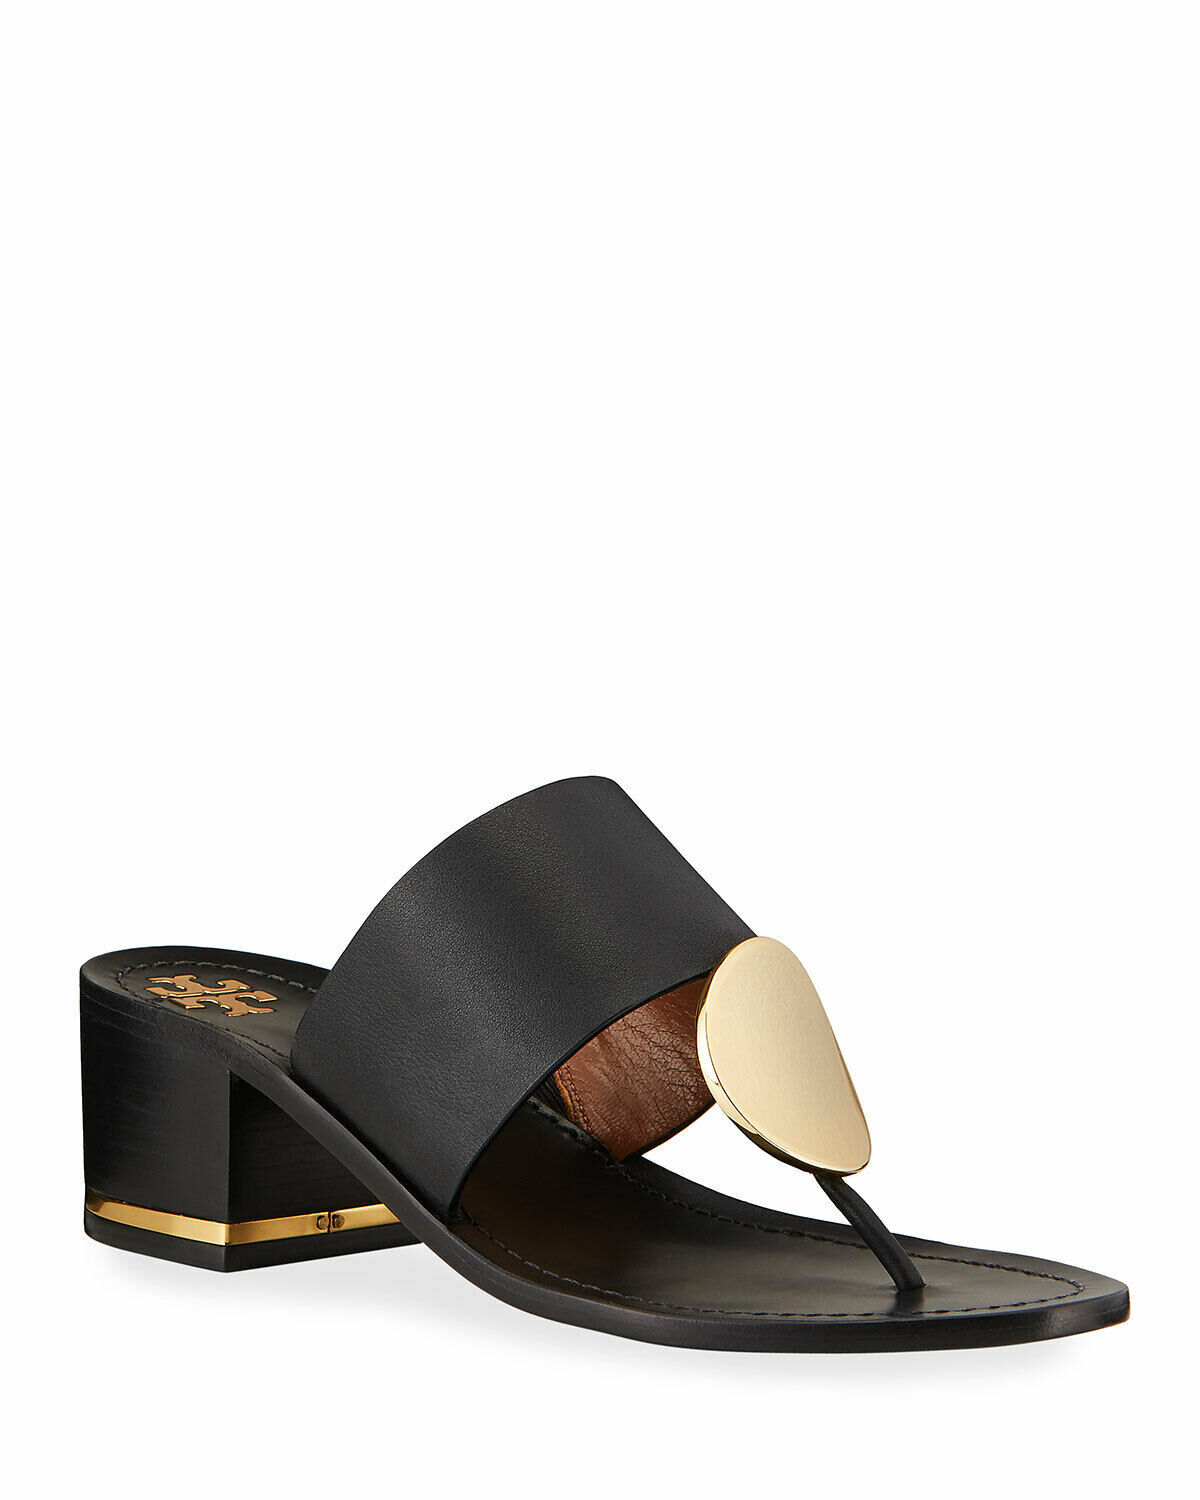 Tory Burch Patos Disk-Embellished Leather Thong Mules Size 5.5 MSRP:$278.00 - $227.69